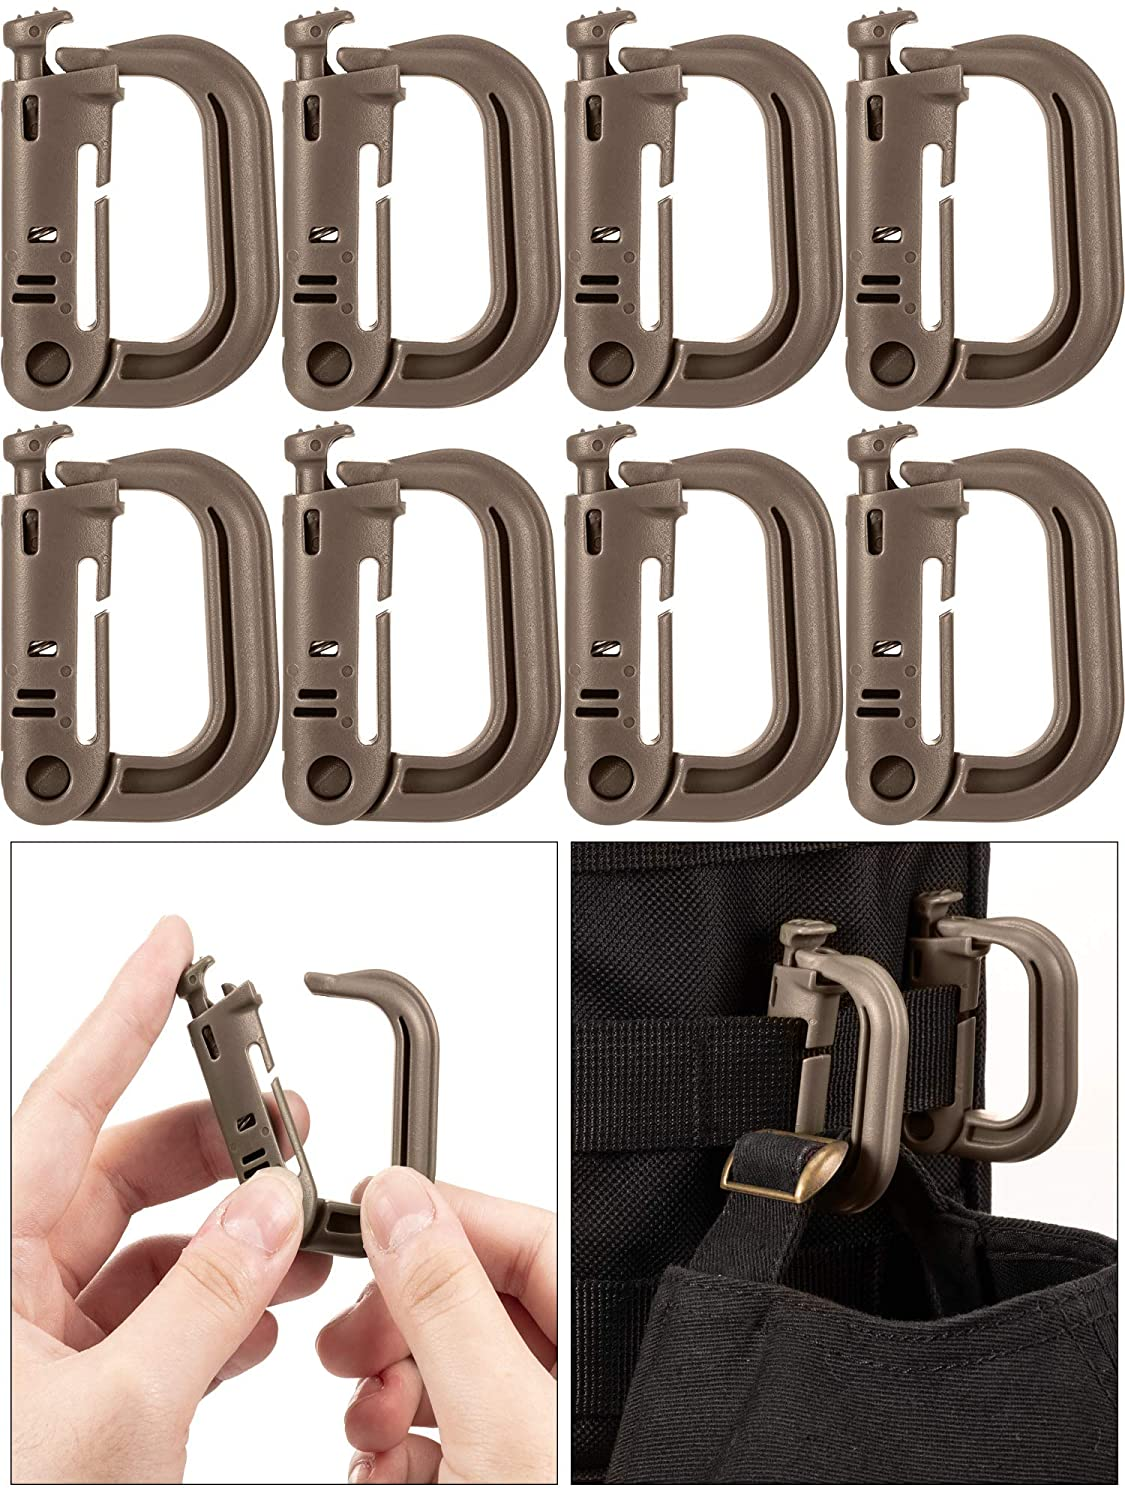 30 Pieces Tactical Gear Clip Strap D Ring Hook Tactical Vest Belt for Molle Backpack Webbing Attachments